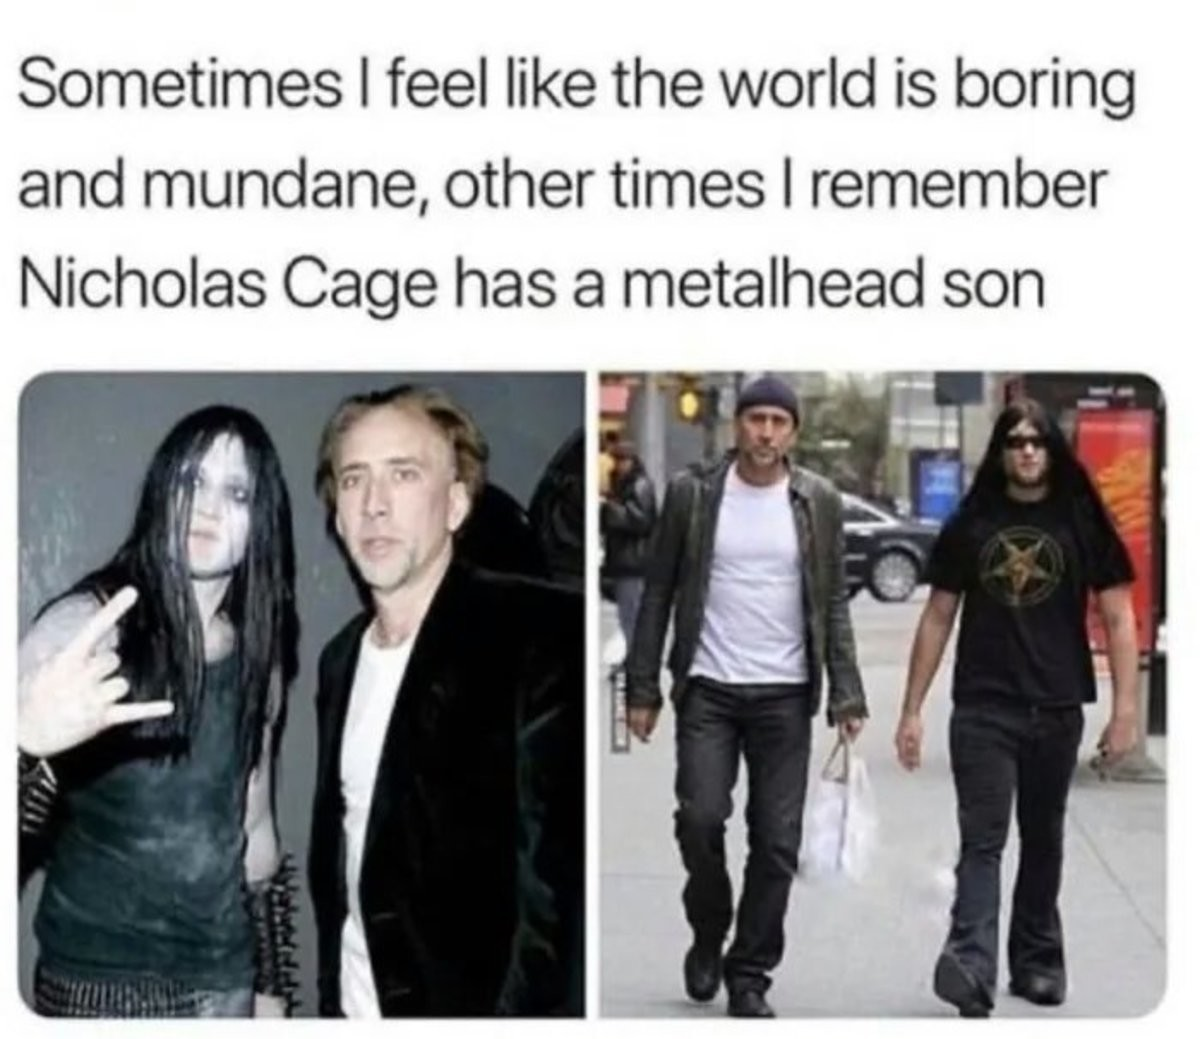 Just a reminder. .. Dudes name is Kal-El Nic Cage(also cage isn't his real last name dude took if from Luke Cage) is a nerd.Comment edited at .